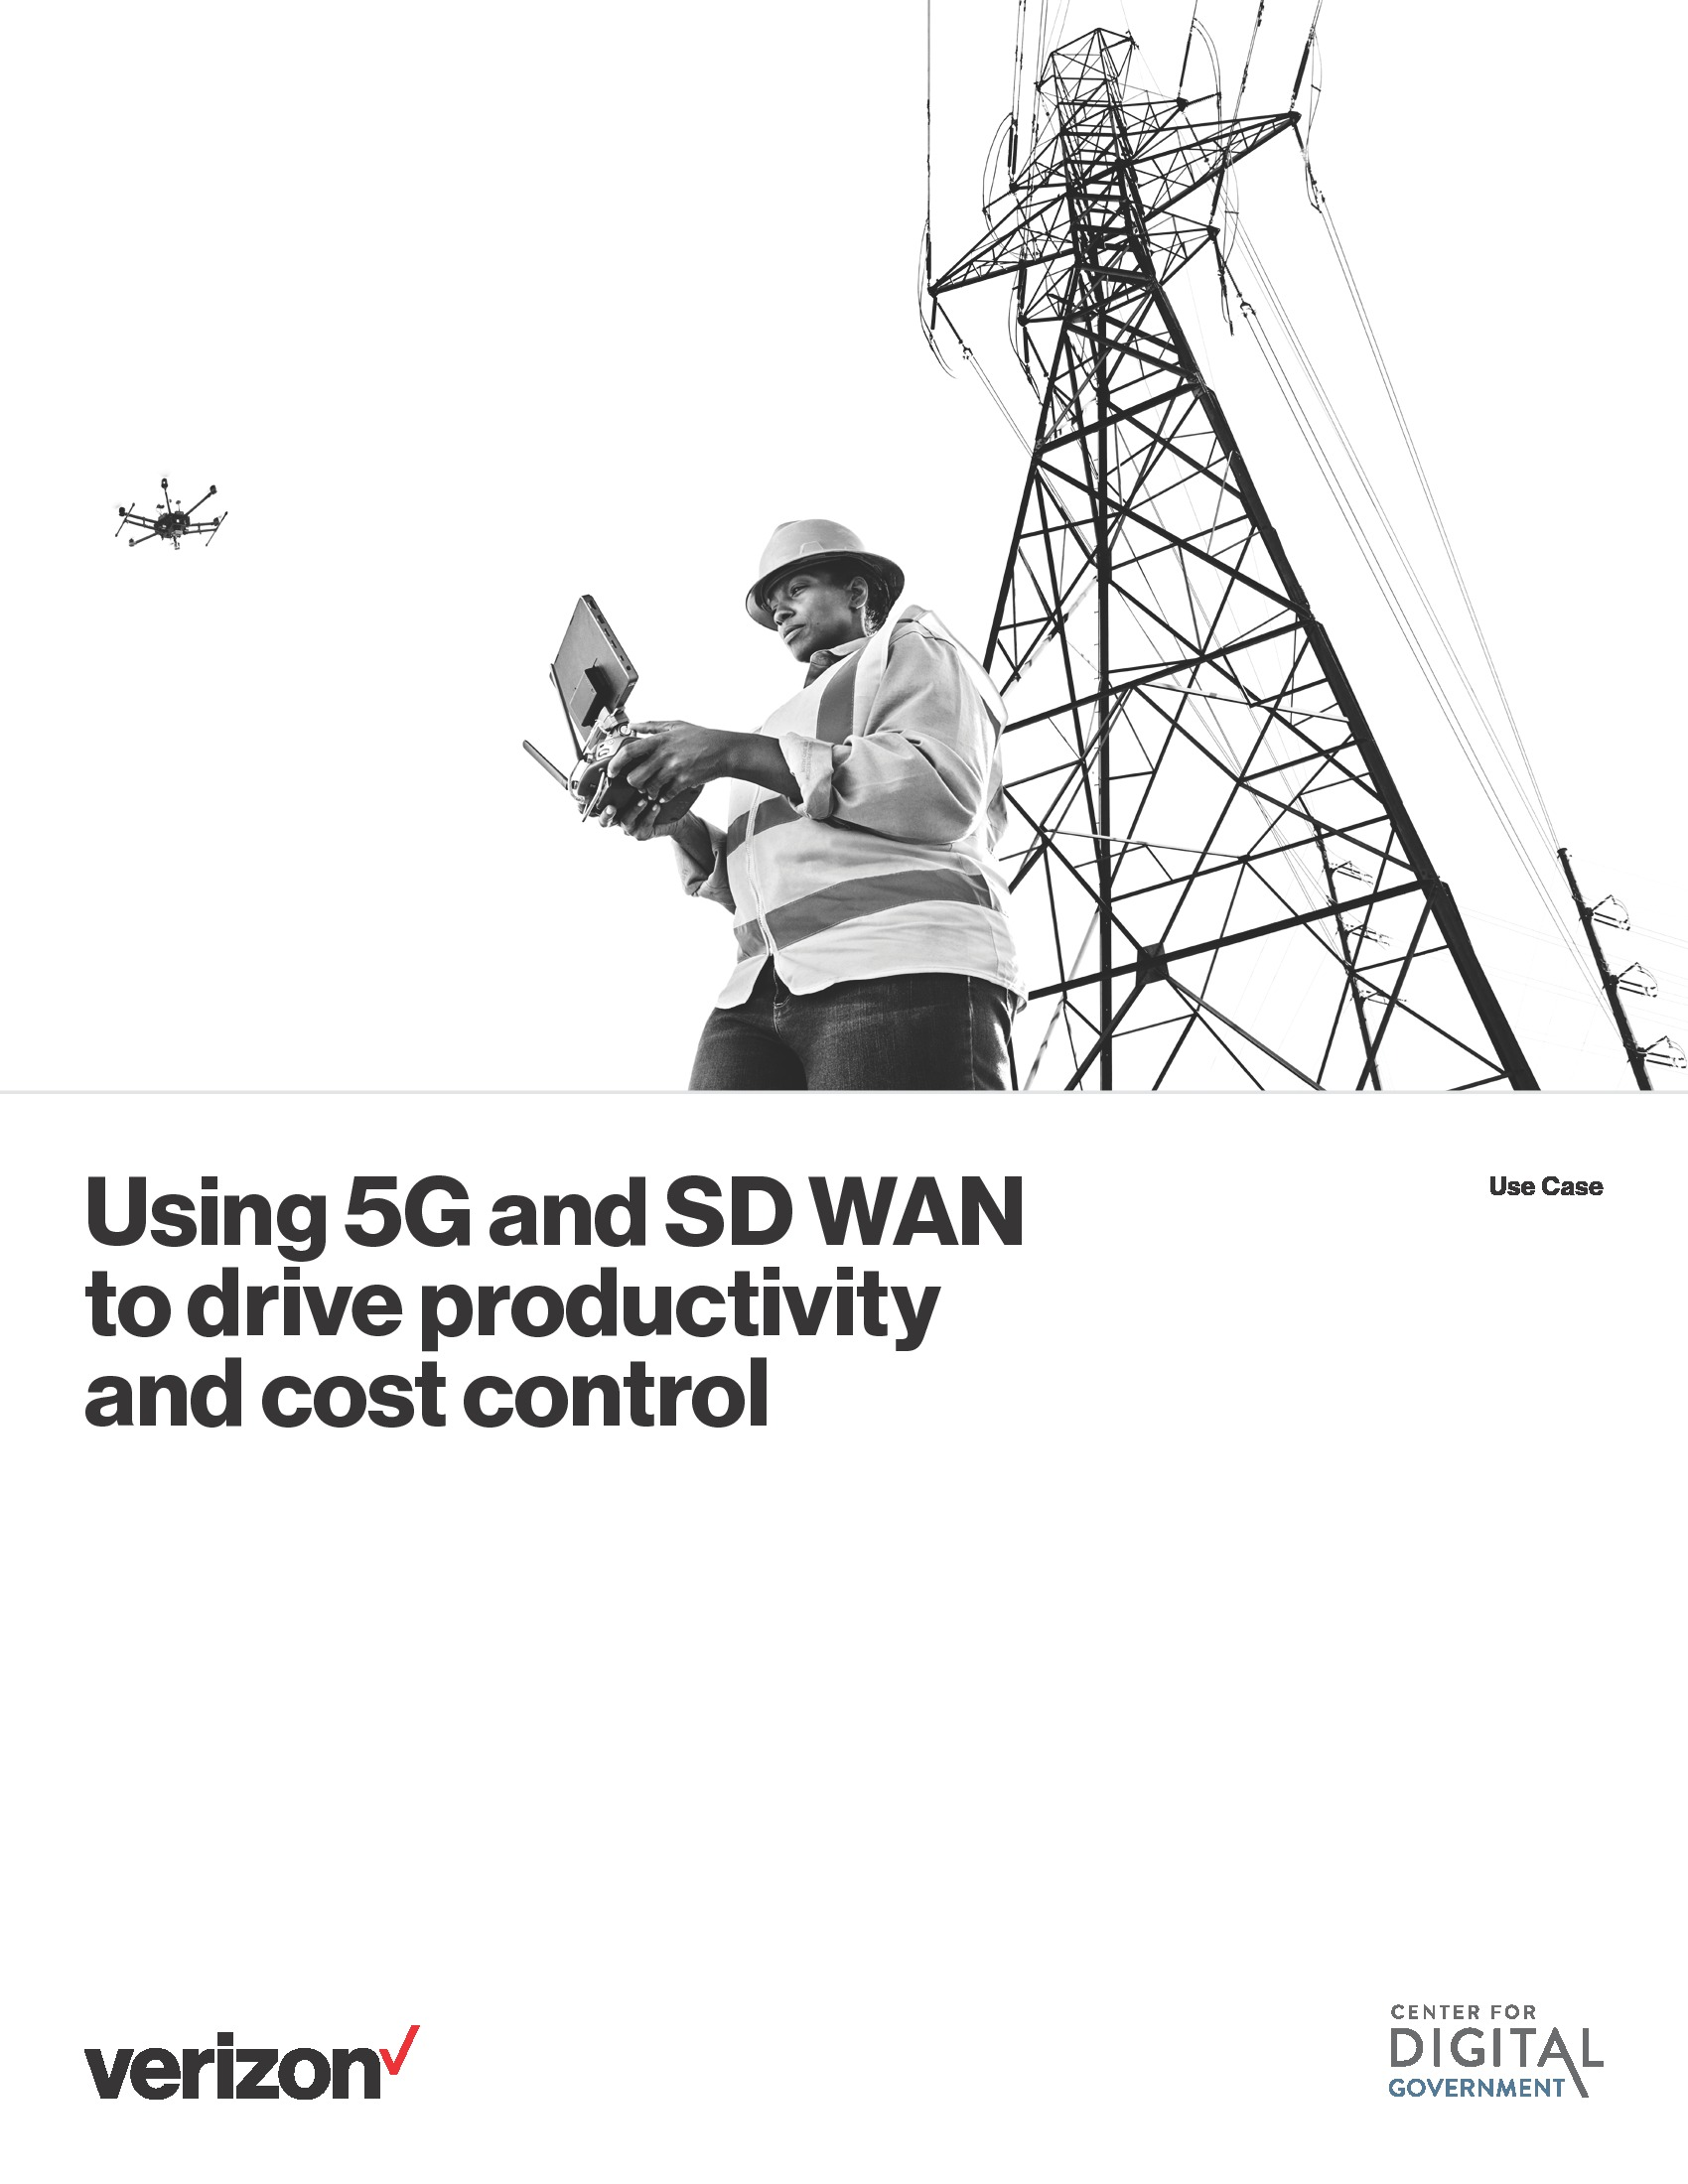 Working Smarter and Faster With 5G Technology